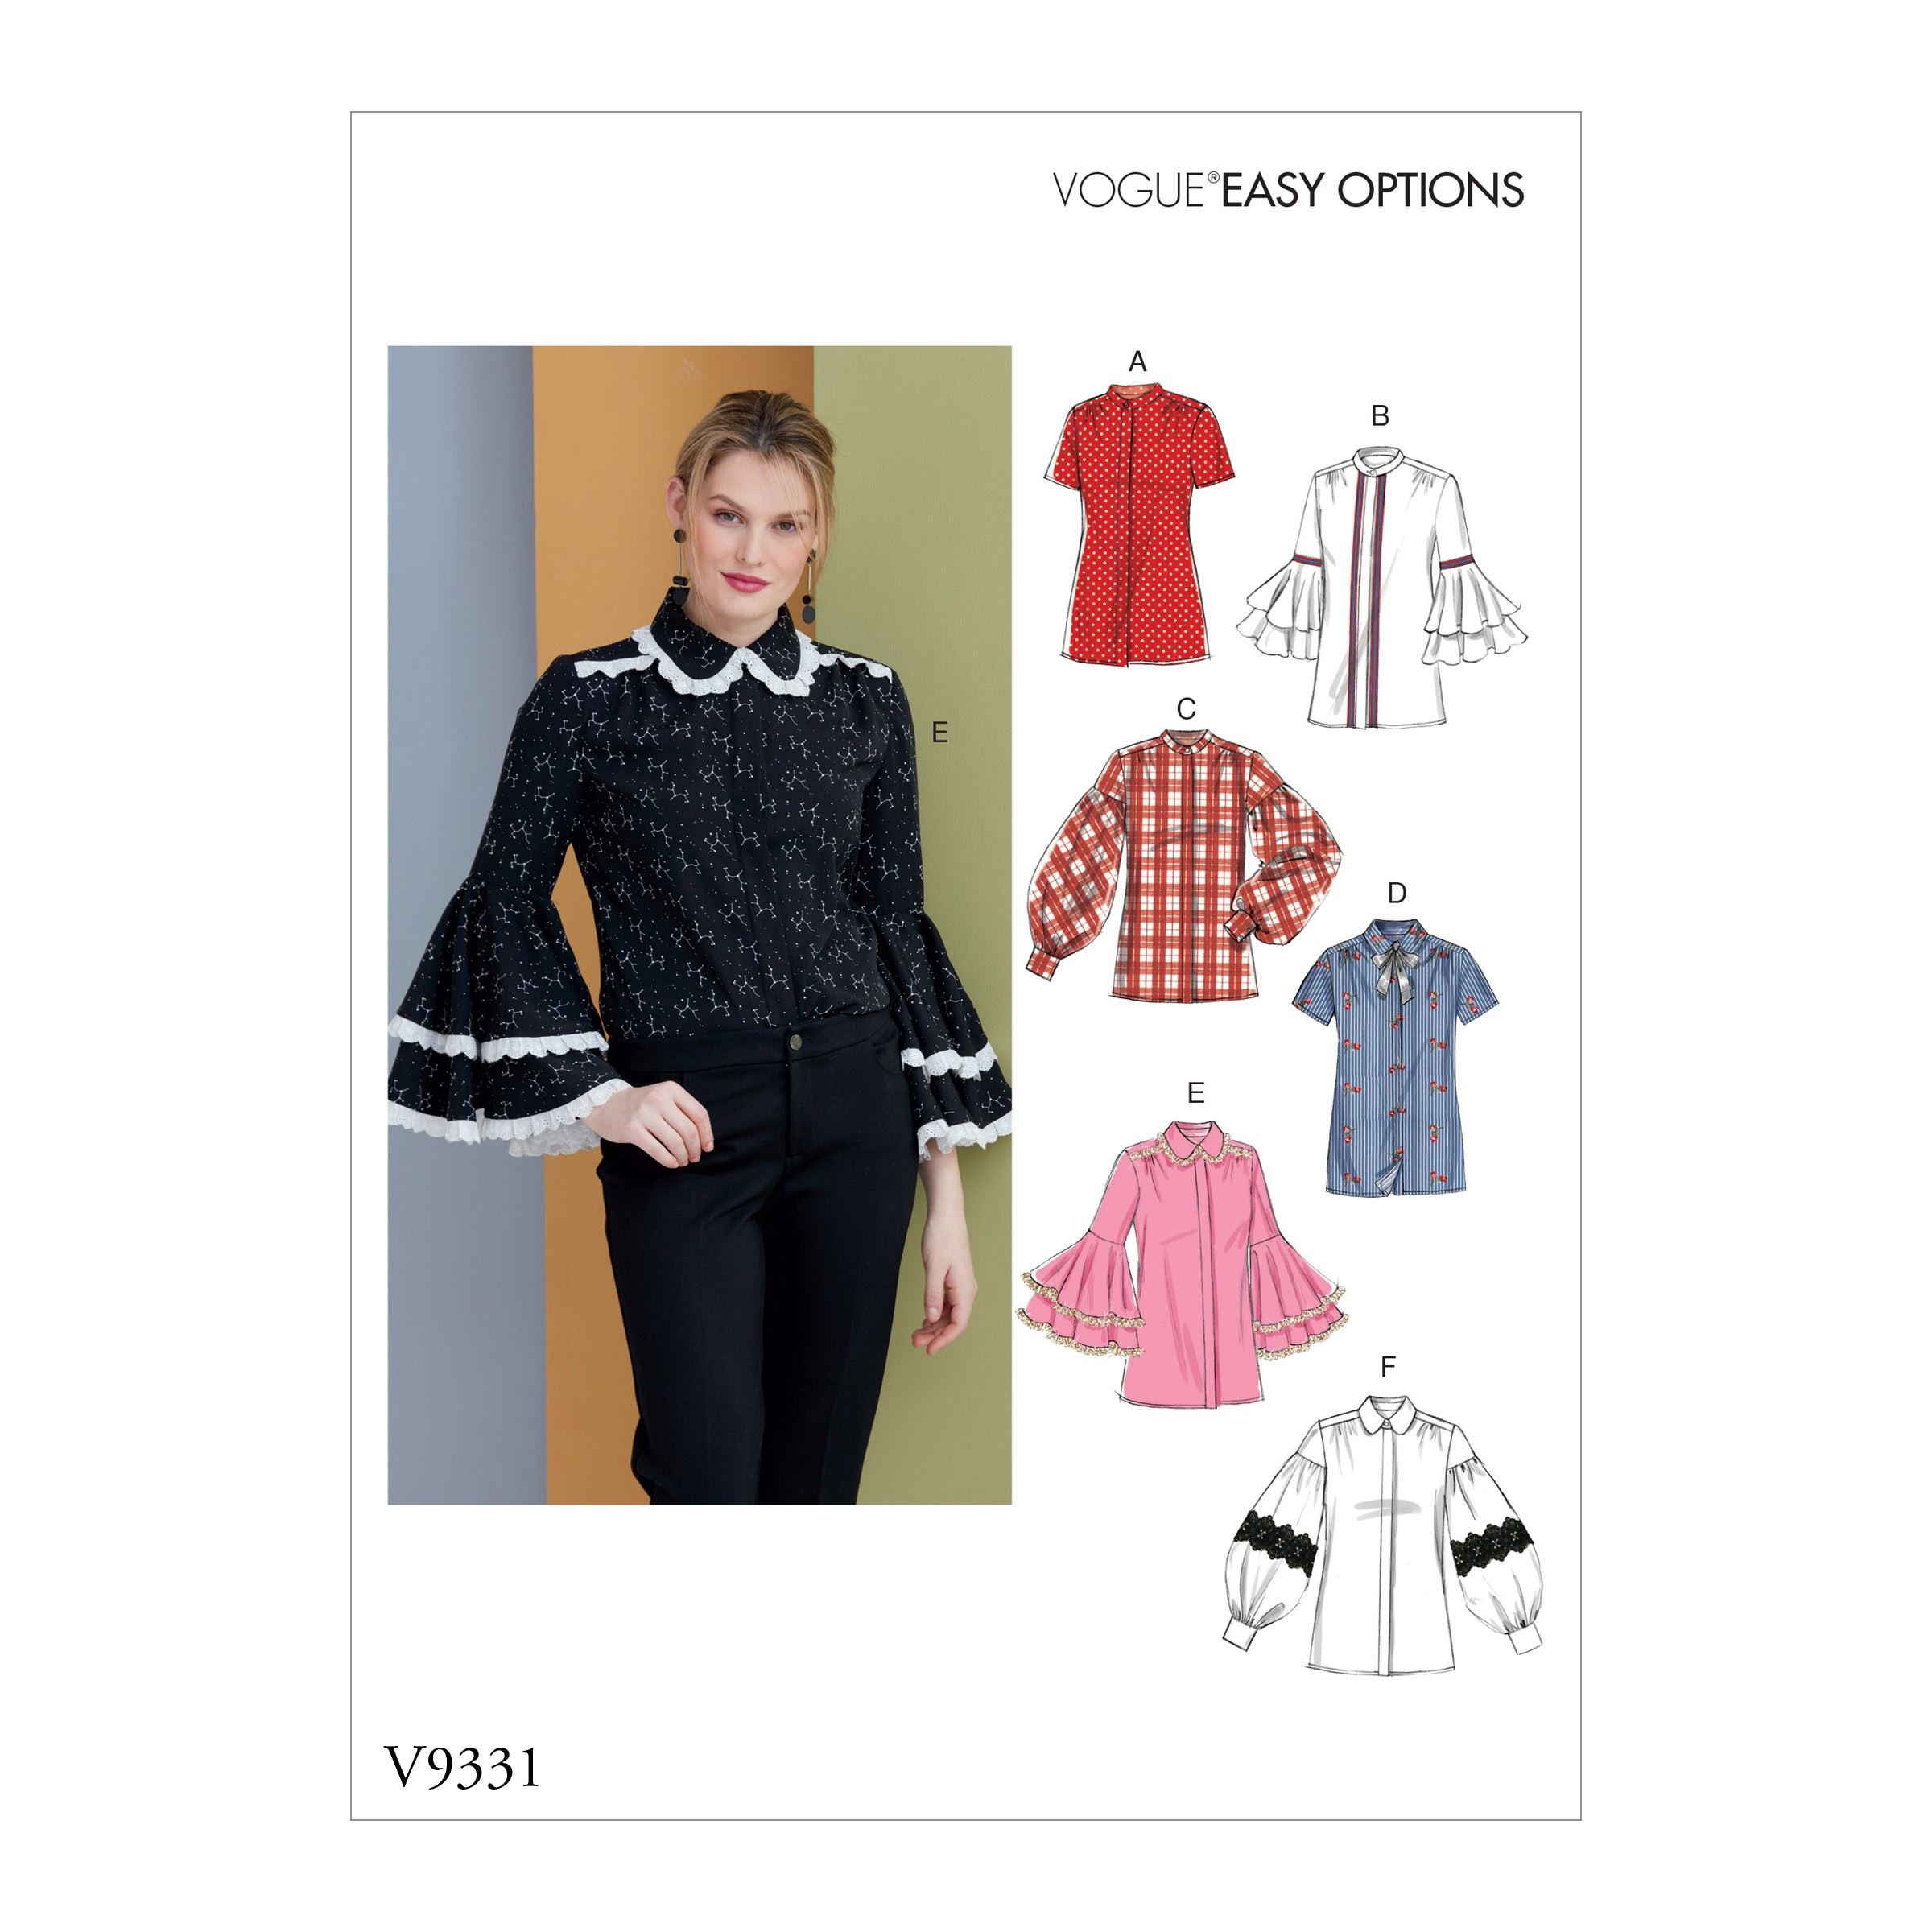 Vogue Sewing Pattern V9331 Women's Collared Shirt With Sleeve Variations